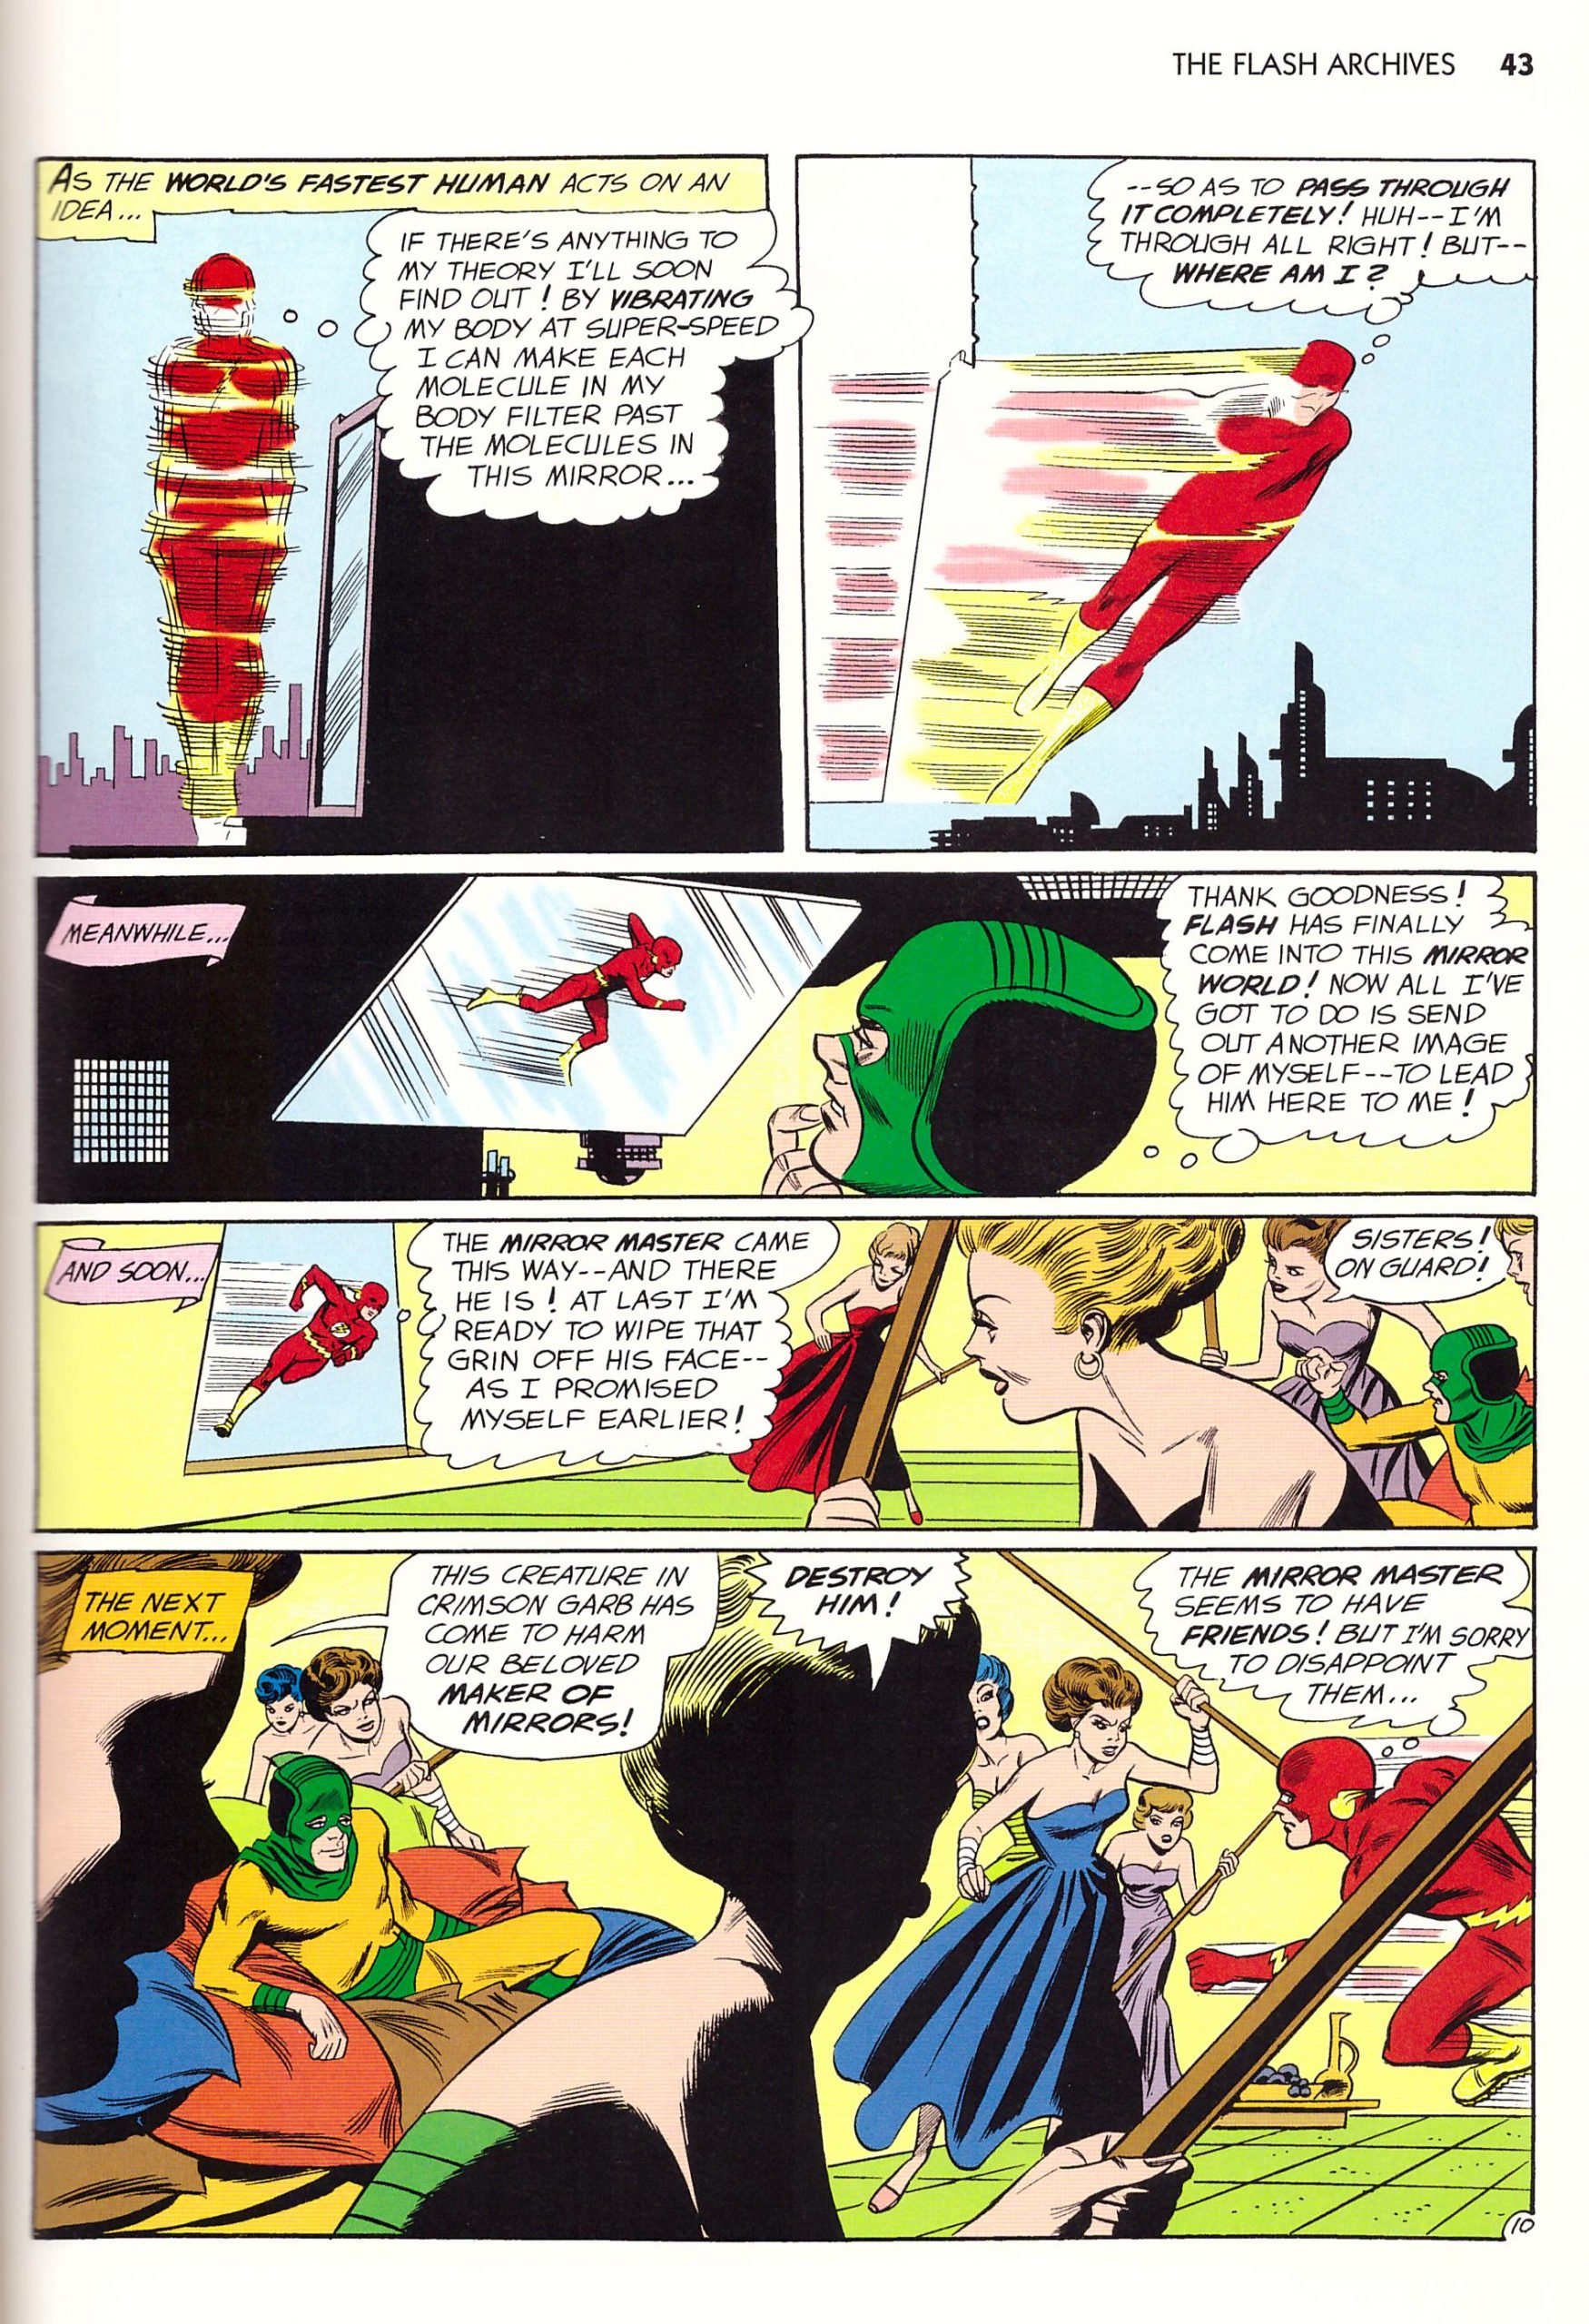 The Flash Archives Vol 4 review